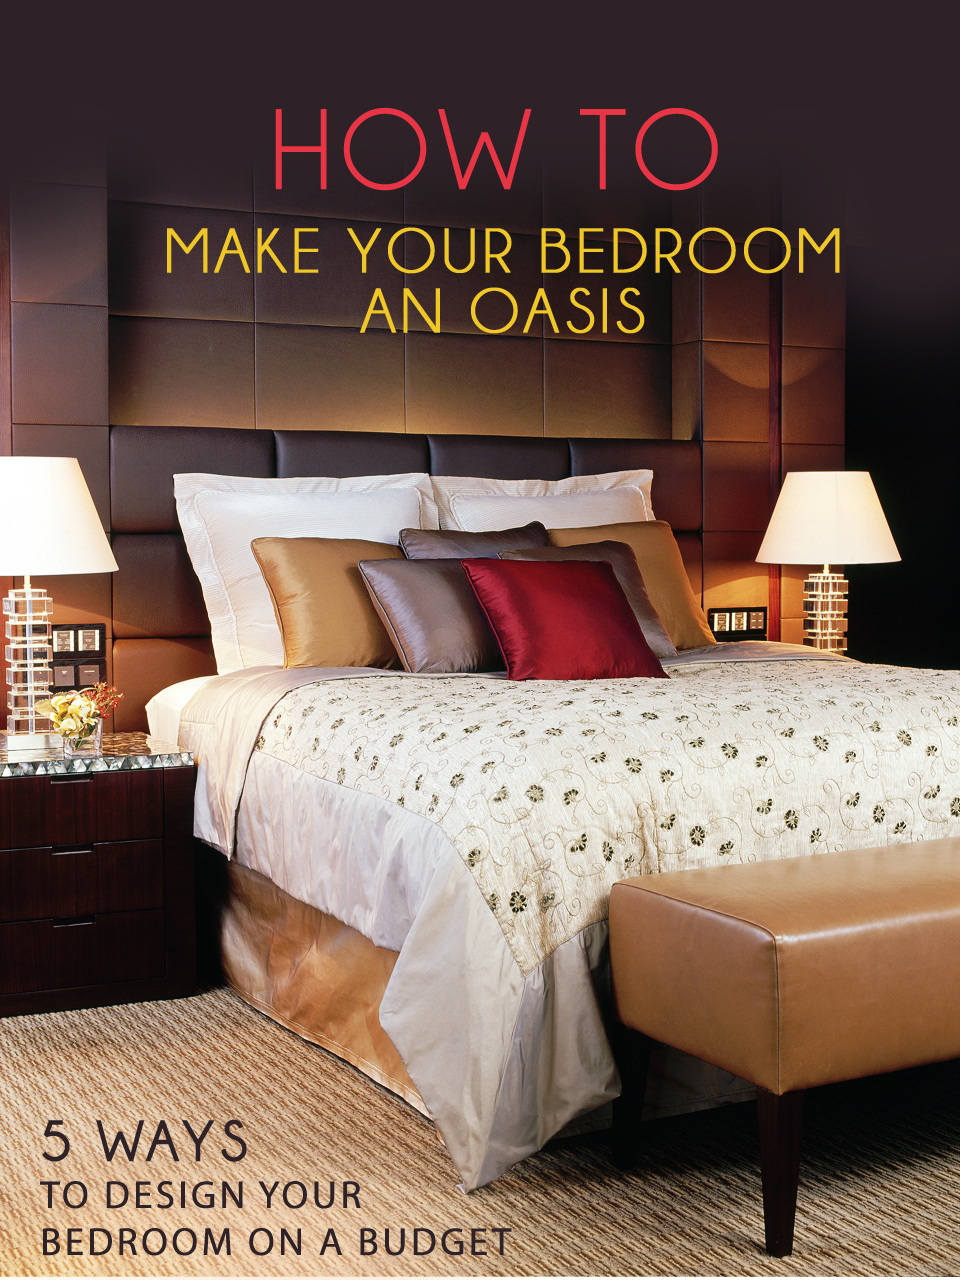 How To Make Your Bedroom An Oasis